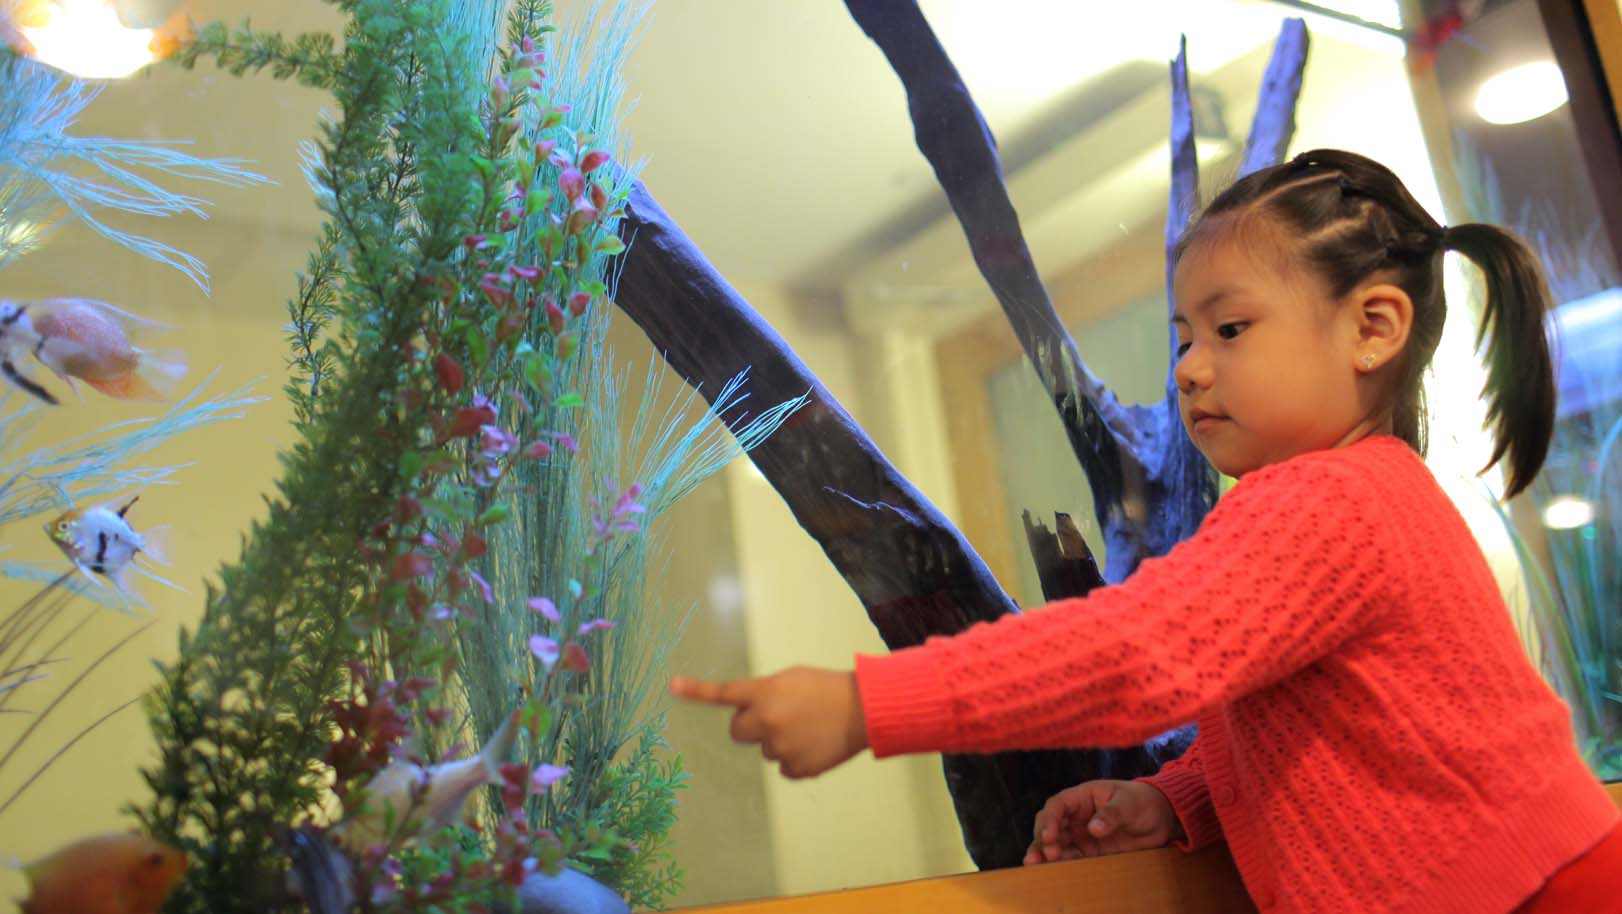 Little girl points at fish tank.